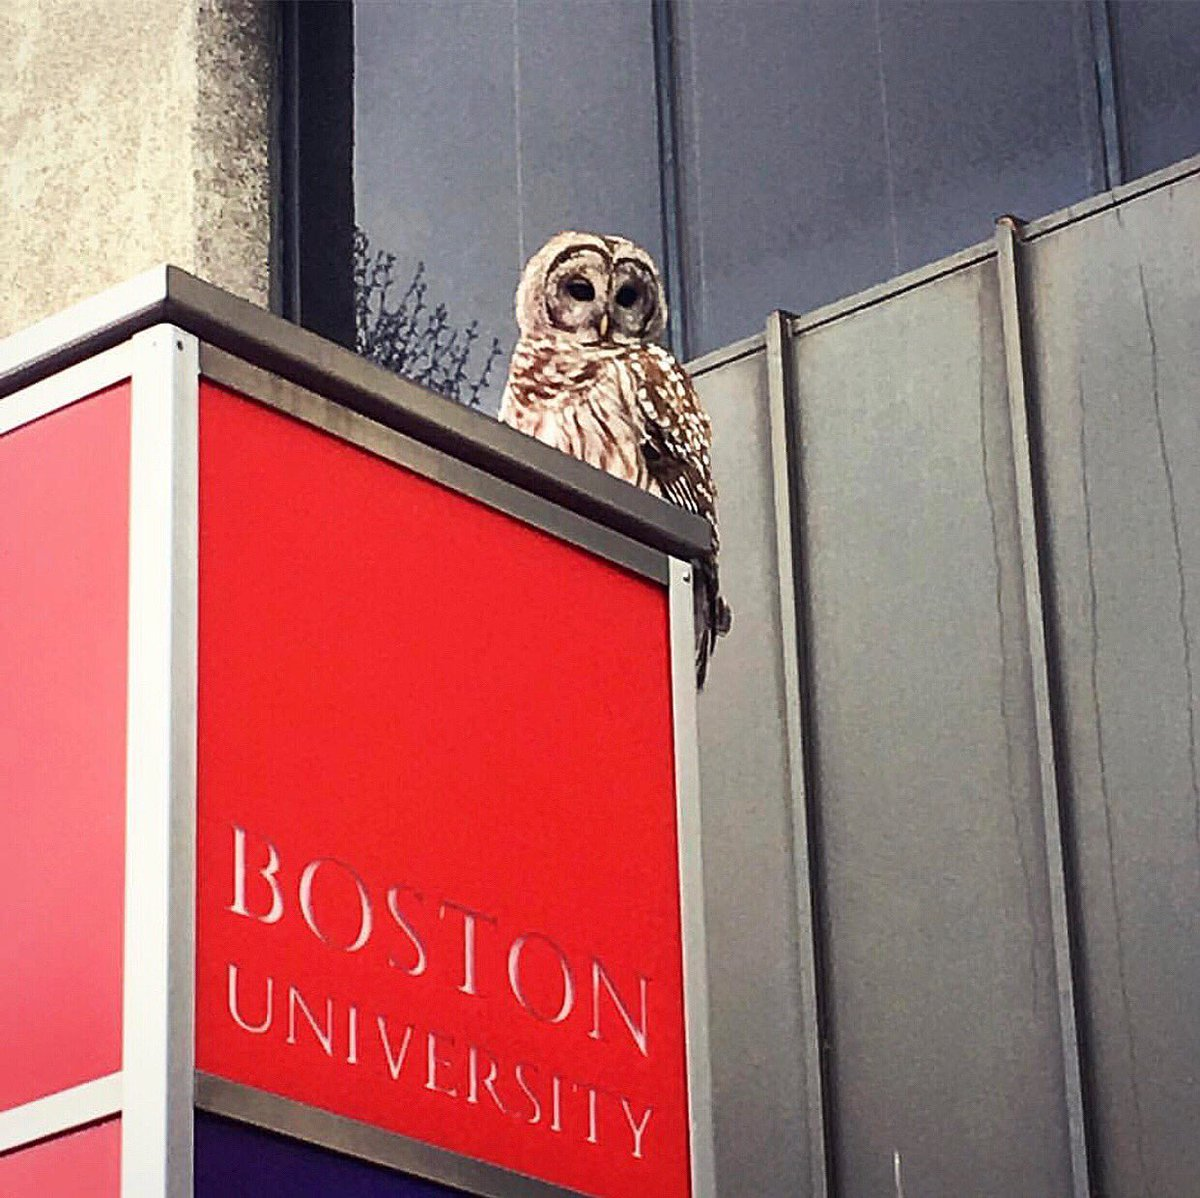 When you're trying to figure out if you're at Hogwarts or Boston University. 🧐 [📸 credit: @co_cowang]